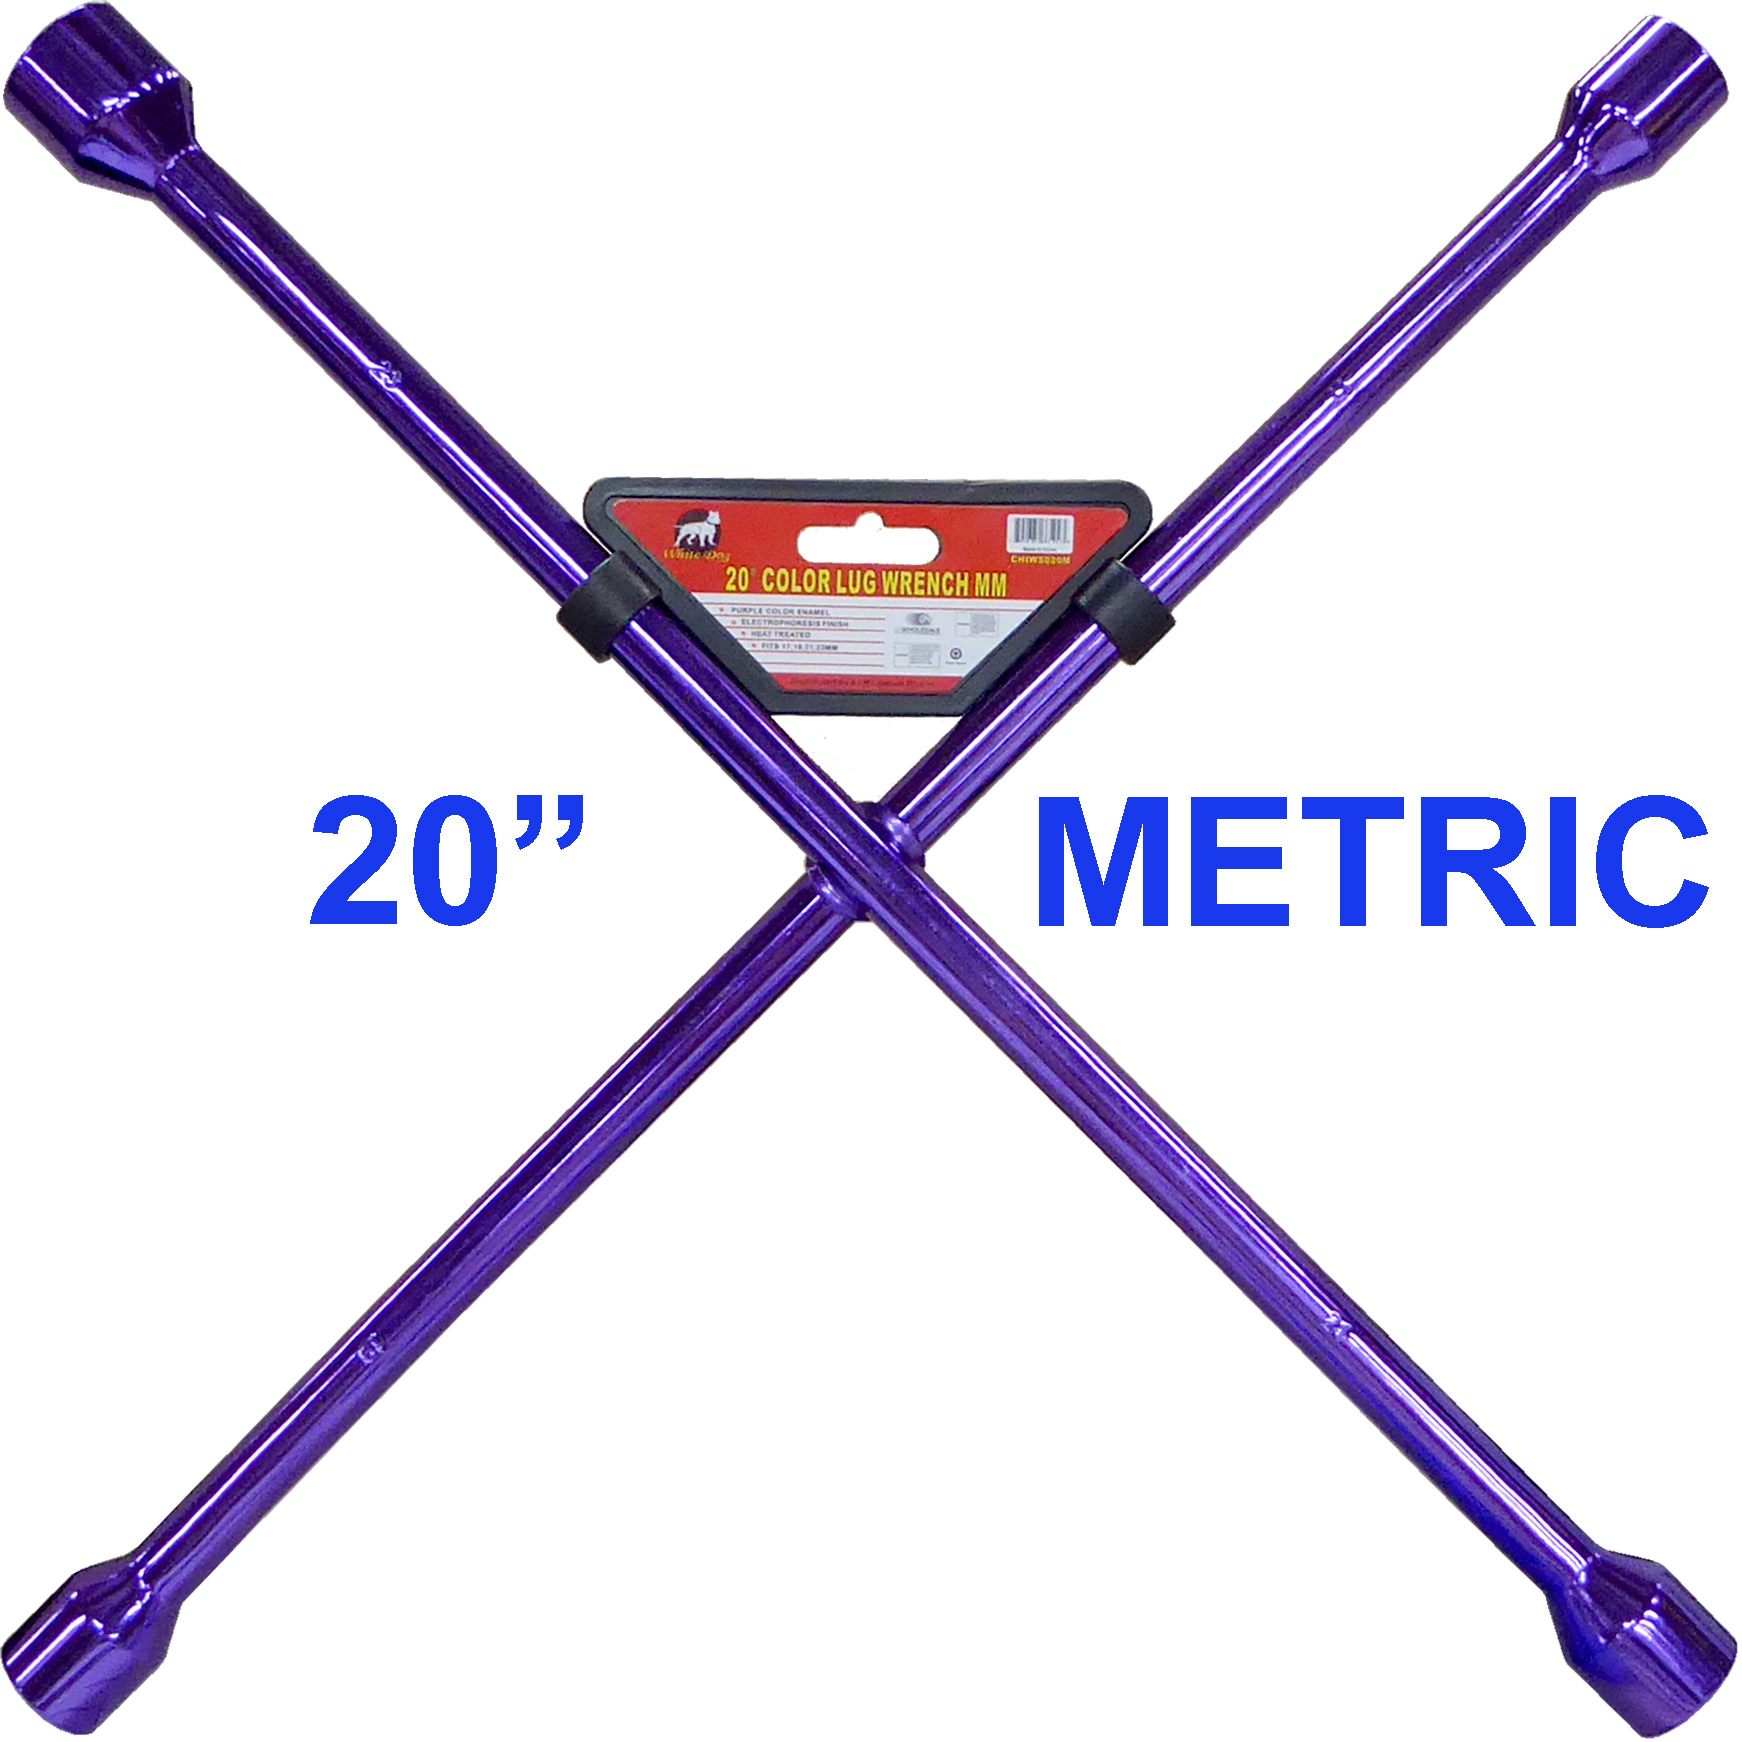 "20"" LUG WRENCH MM"